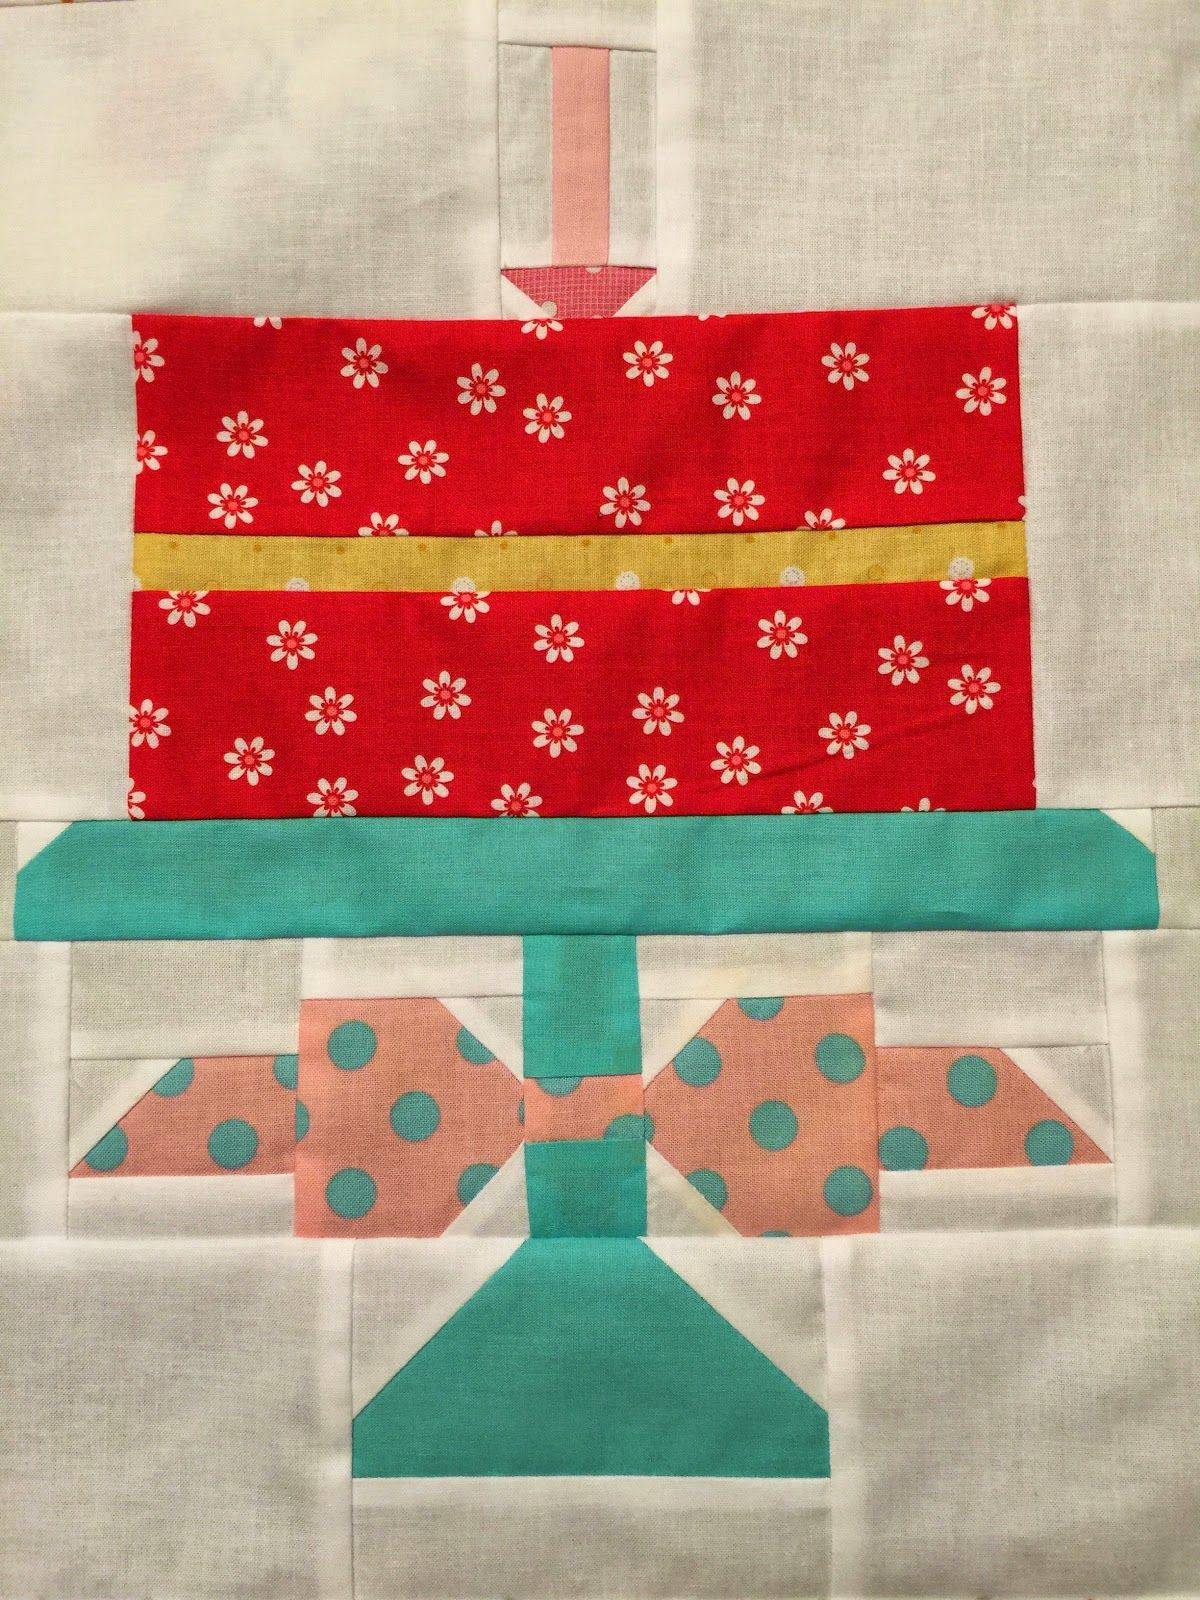 Lori Holt Designed This Cake Block To Celebrate The Year Anniversary Of Her Quilty Fun Quilt Book